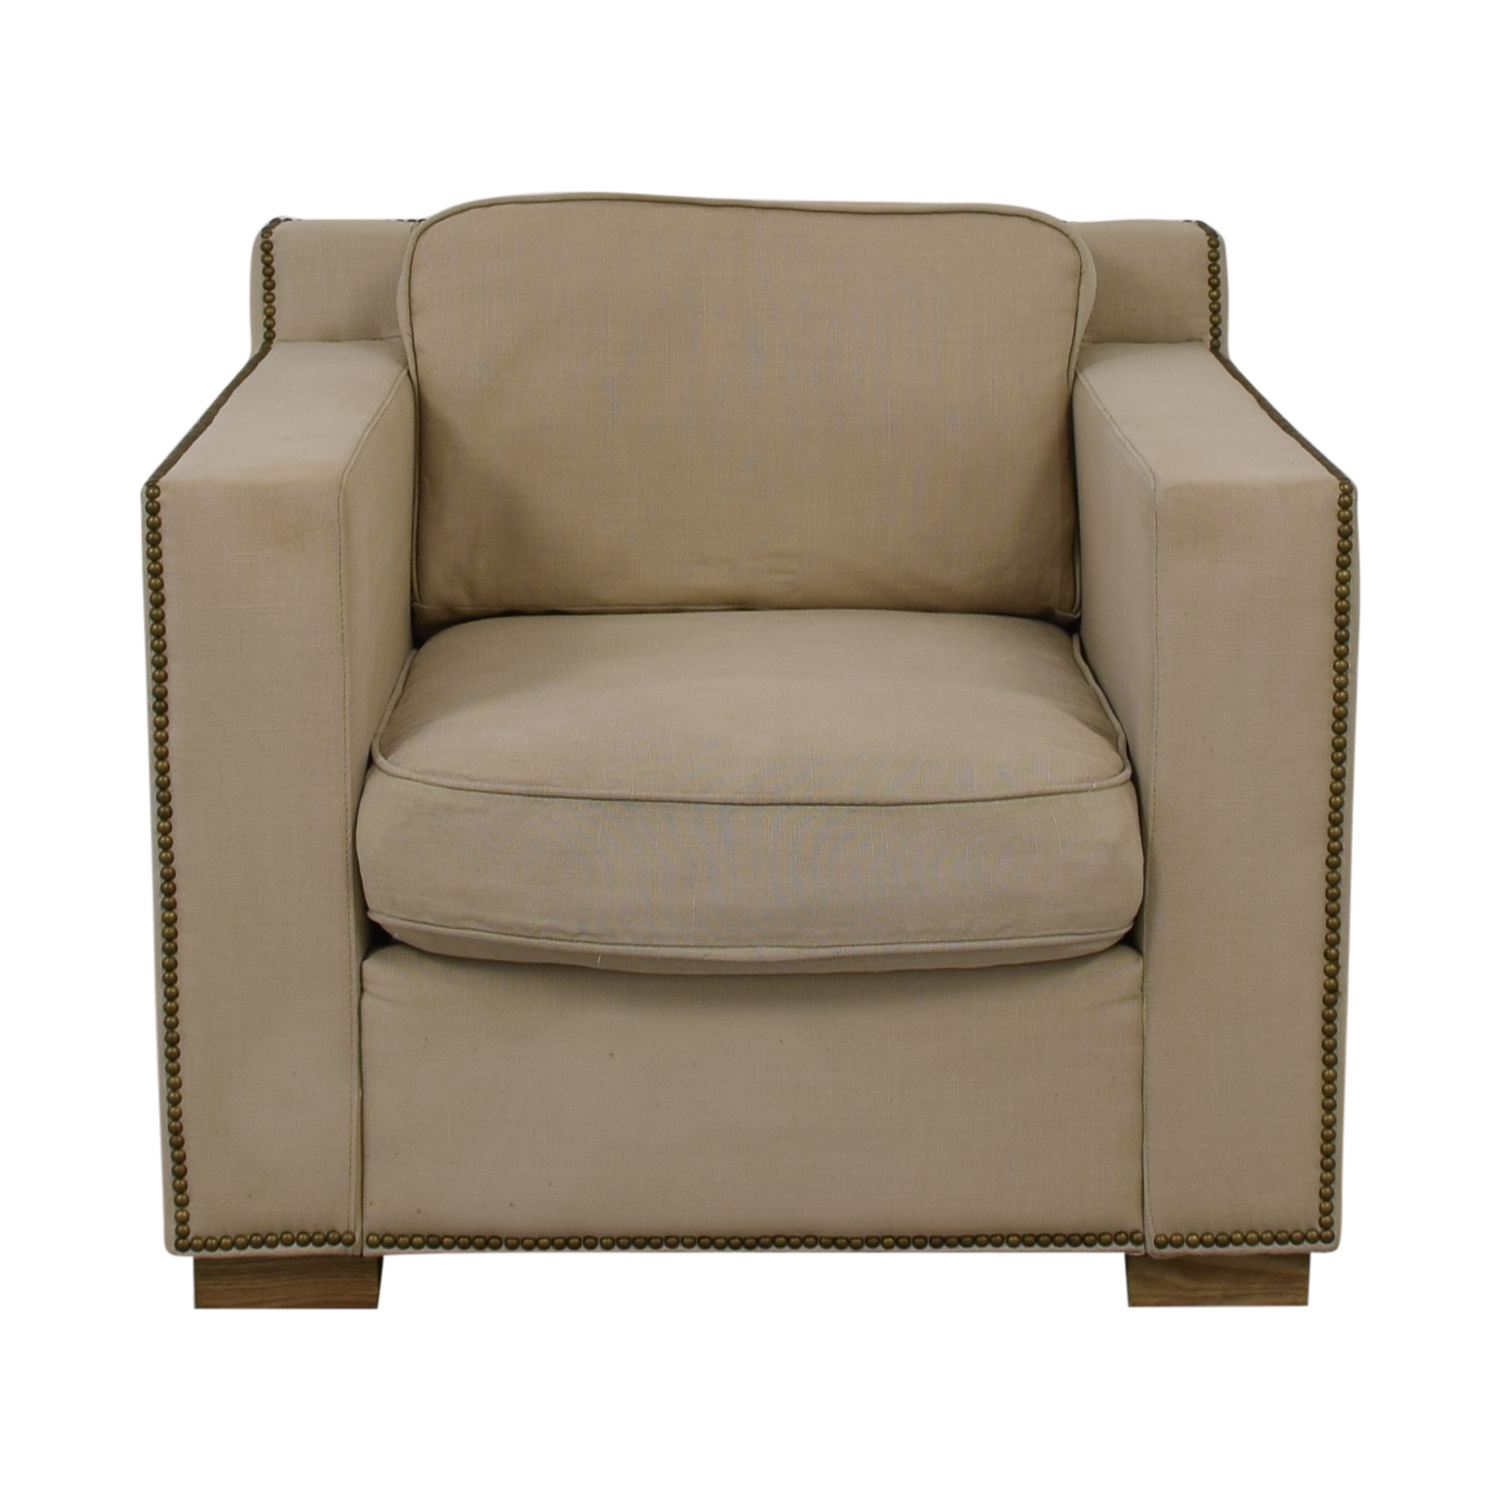 Restoration Hardware Restoration Hardware Collins Beige Nailhead Accent Chair discount